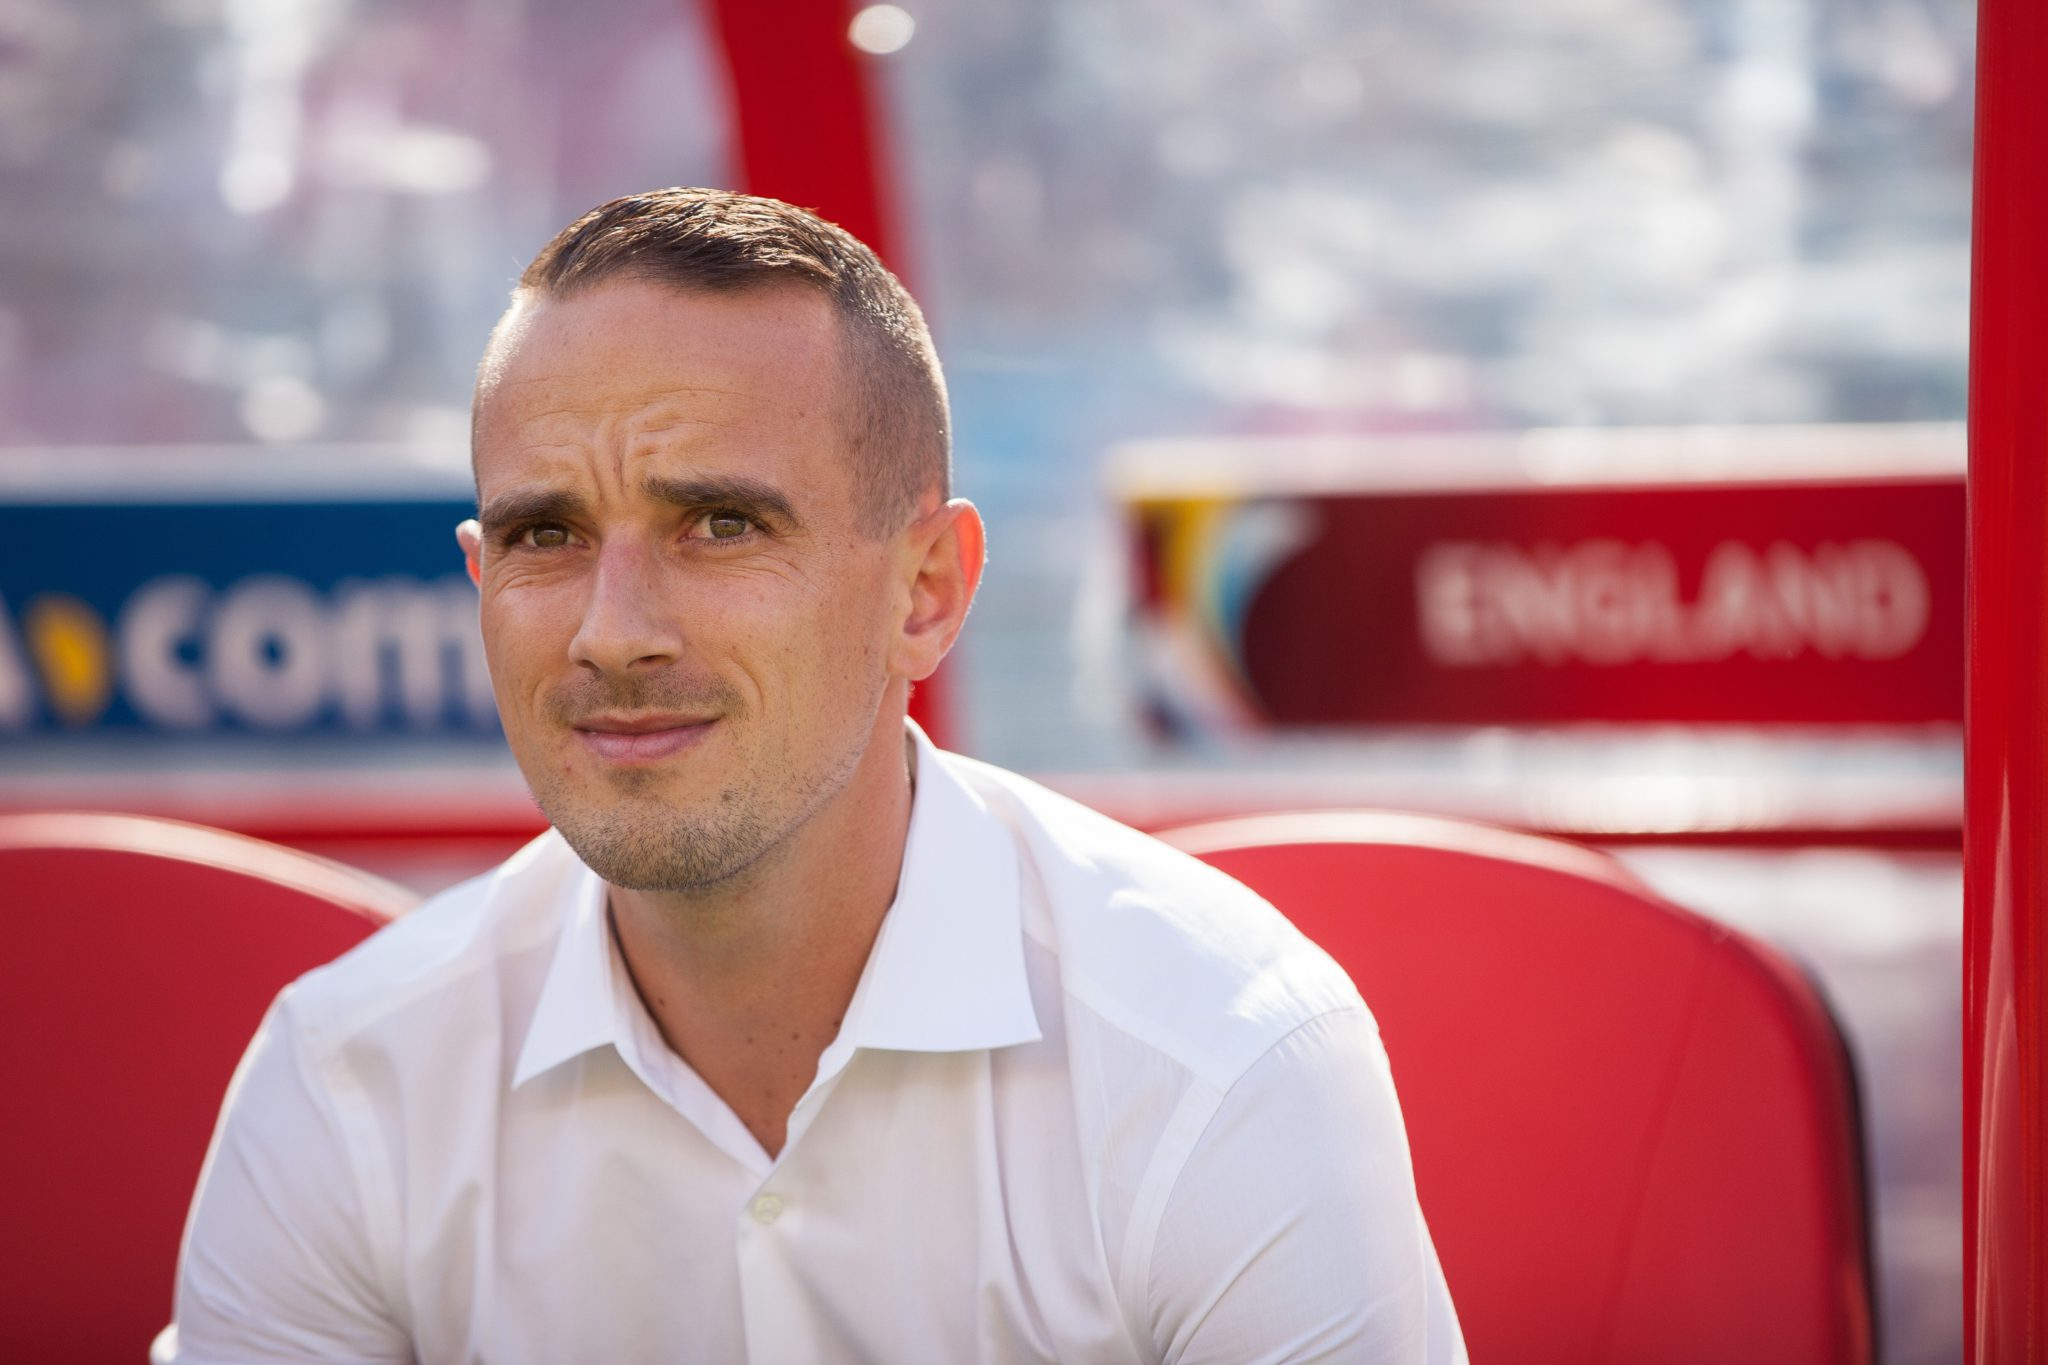 Mark Sampson and England qualified for Euro 2016, and they found out after a clerical error. (Getty Images)